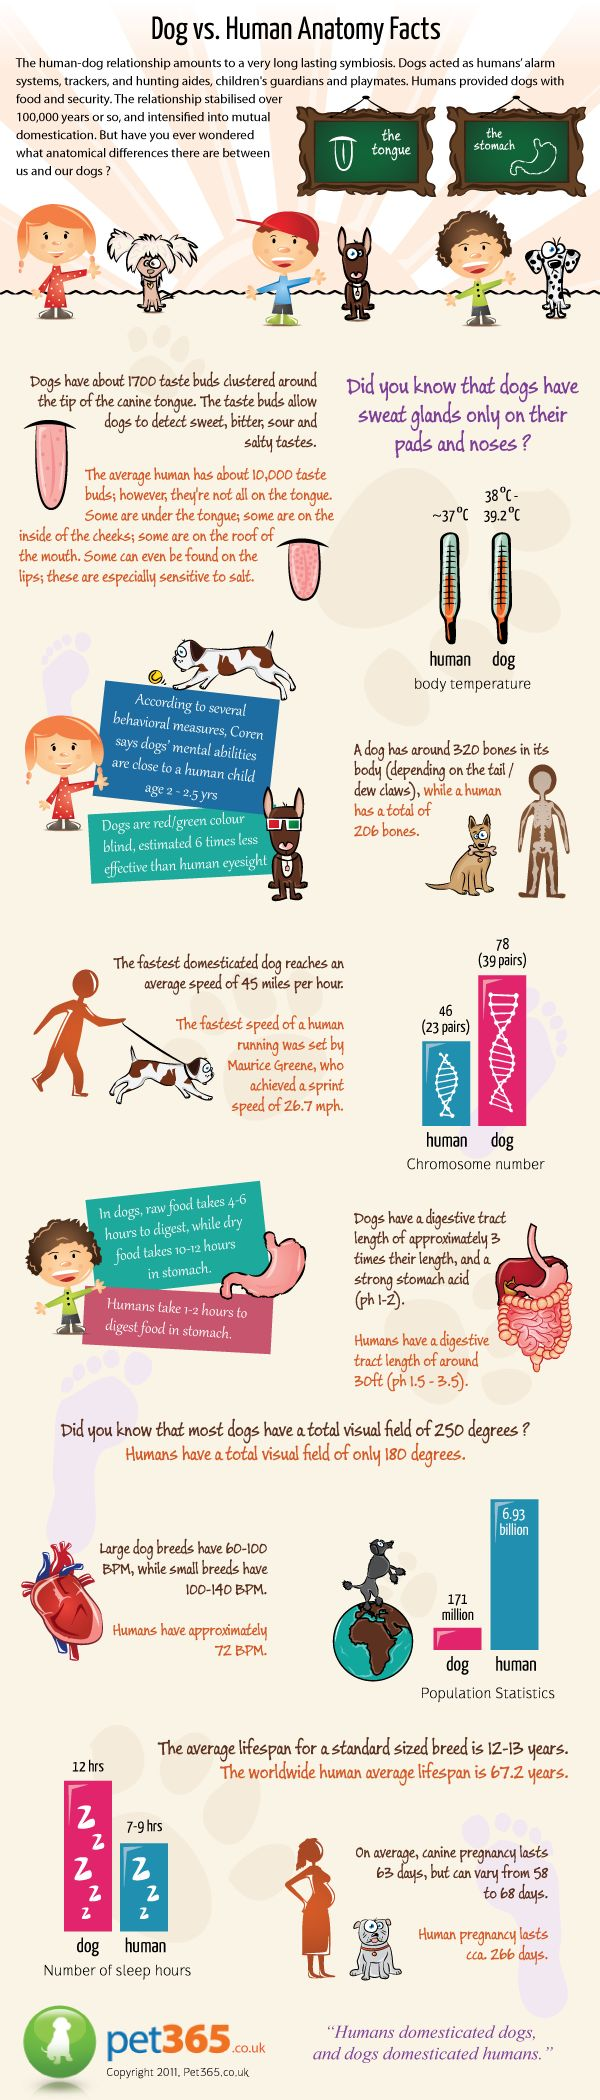 Dog Anatomy Infographic